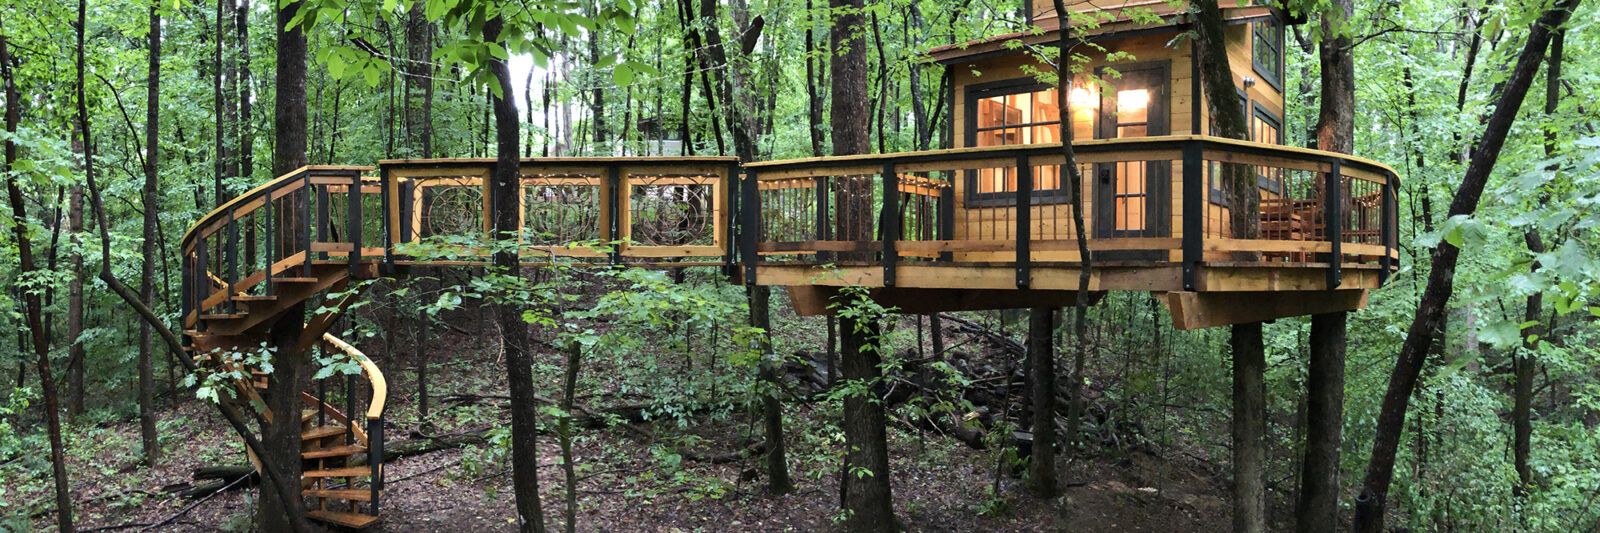 best Airbnbs in Georgia